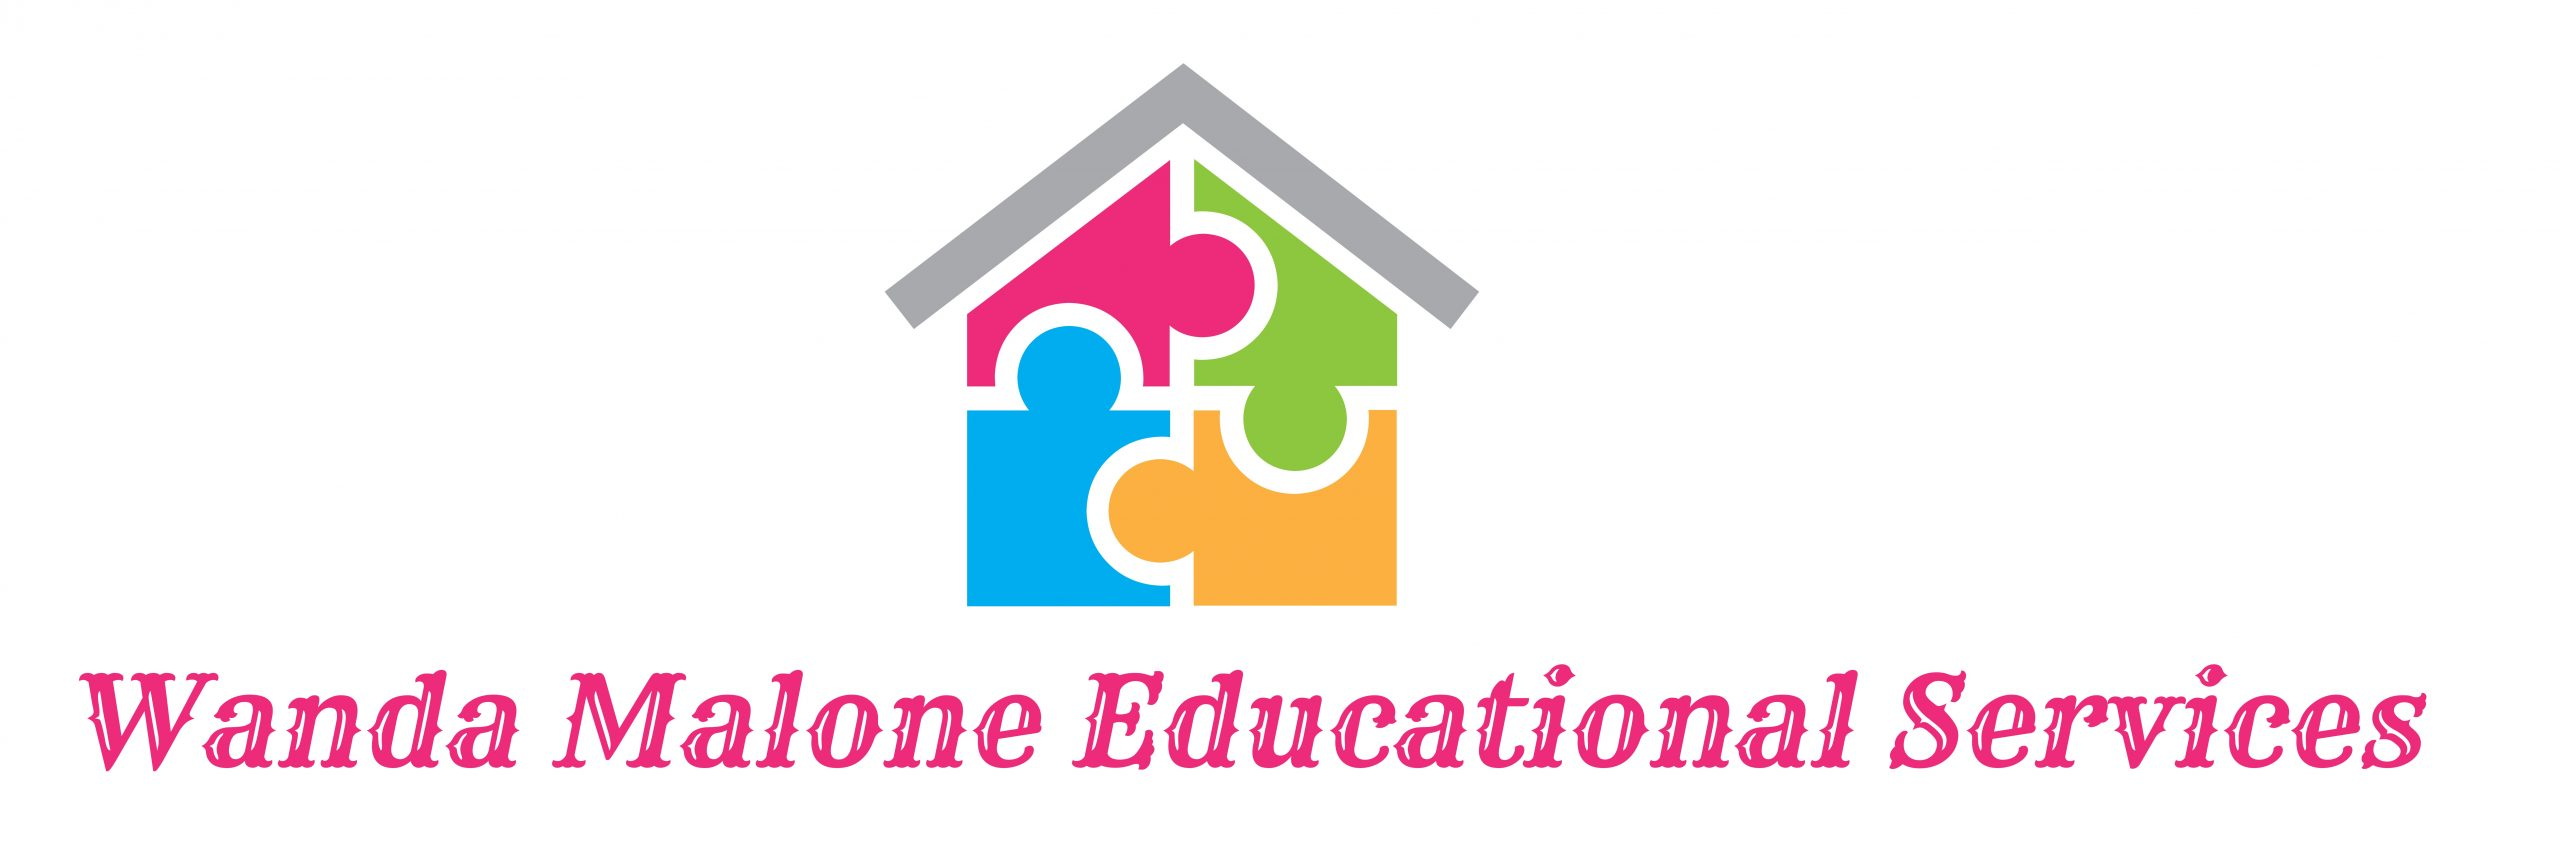 Wanda Malone Educational Services